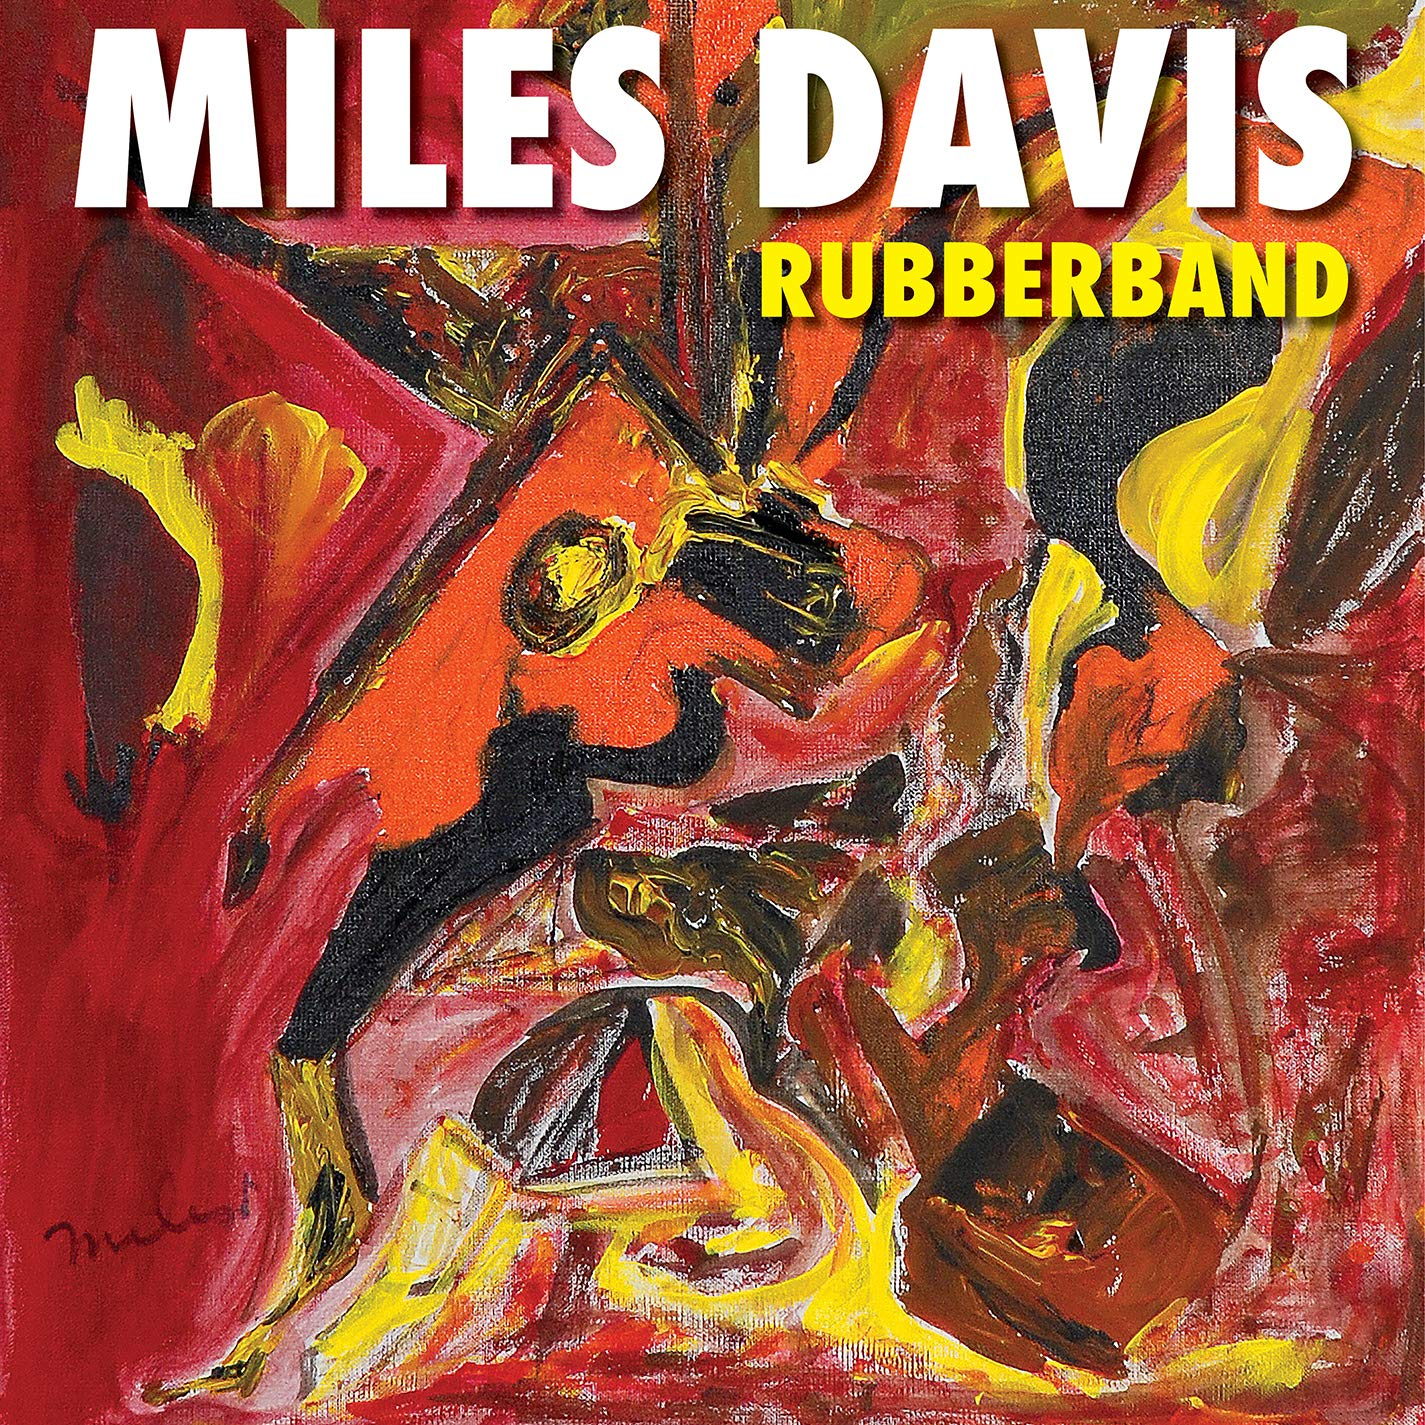 Rubberband Miles Davis, comp. & trp. Randy Hall, Medina Johnson, Ledisi, chant